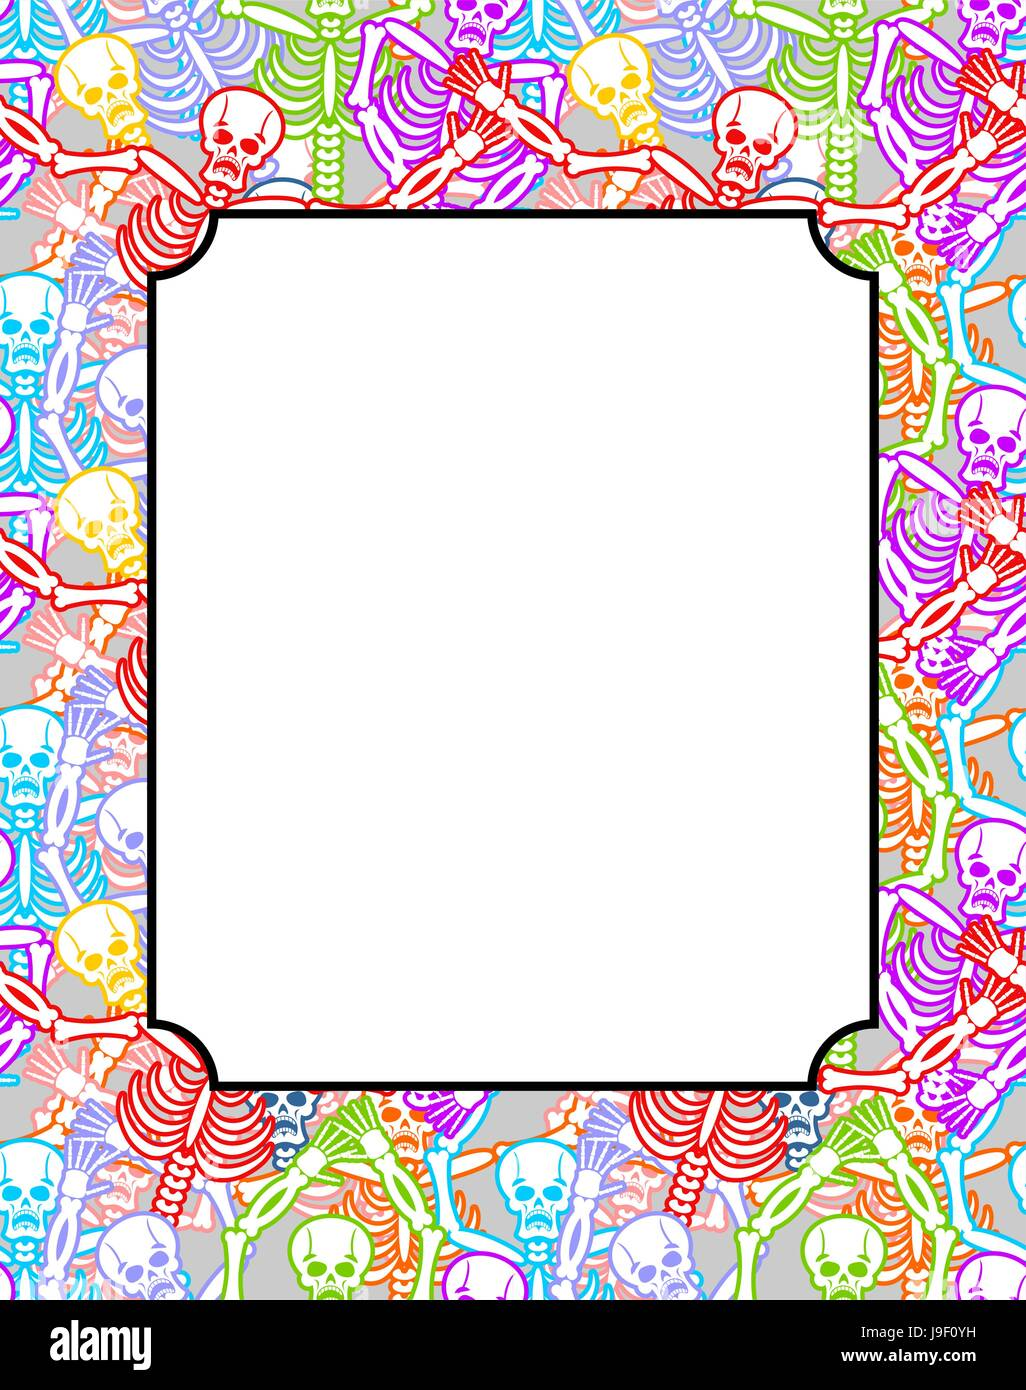 Frame For Day Of The Dead Multicolored Skeletons Color Skull Stock